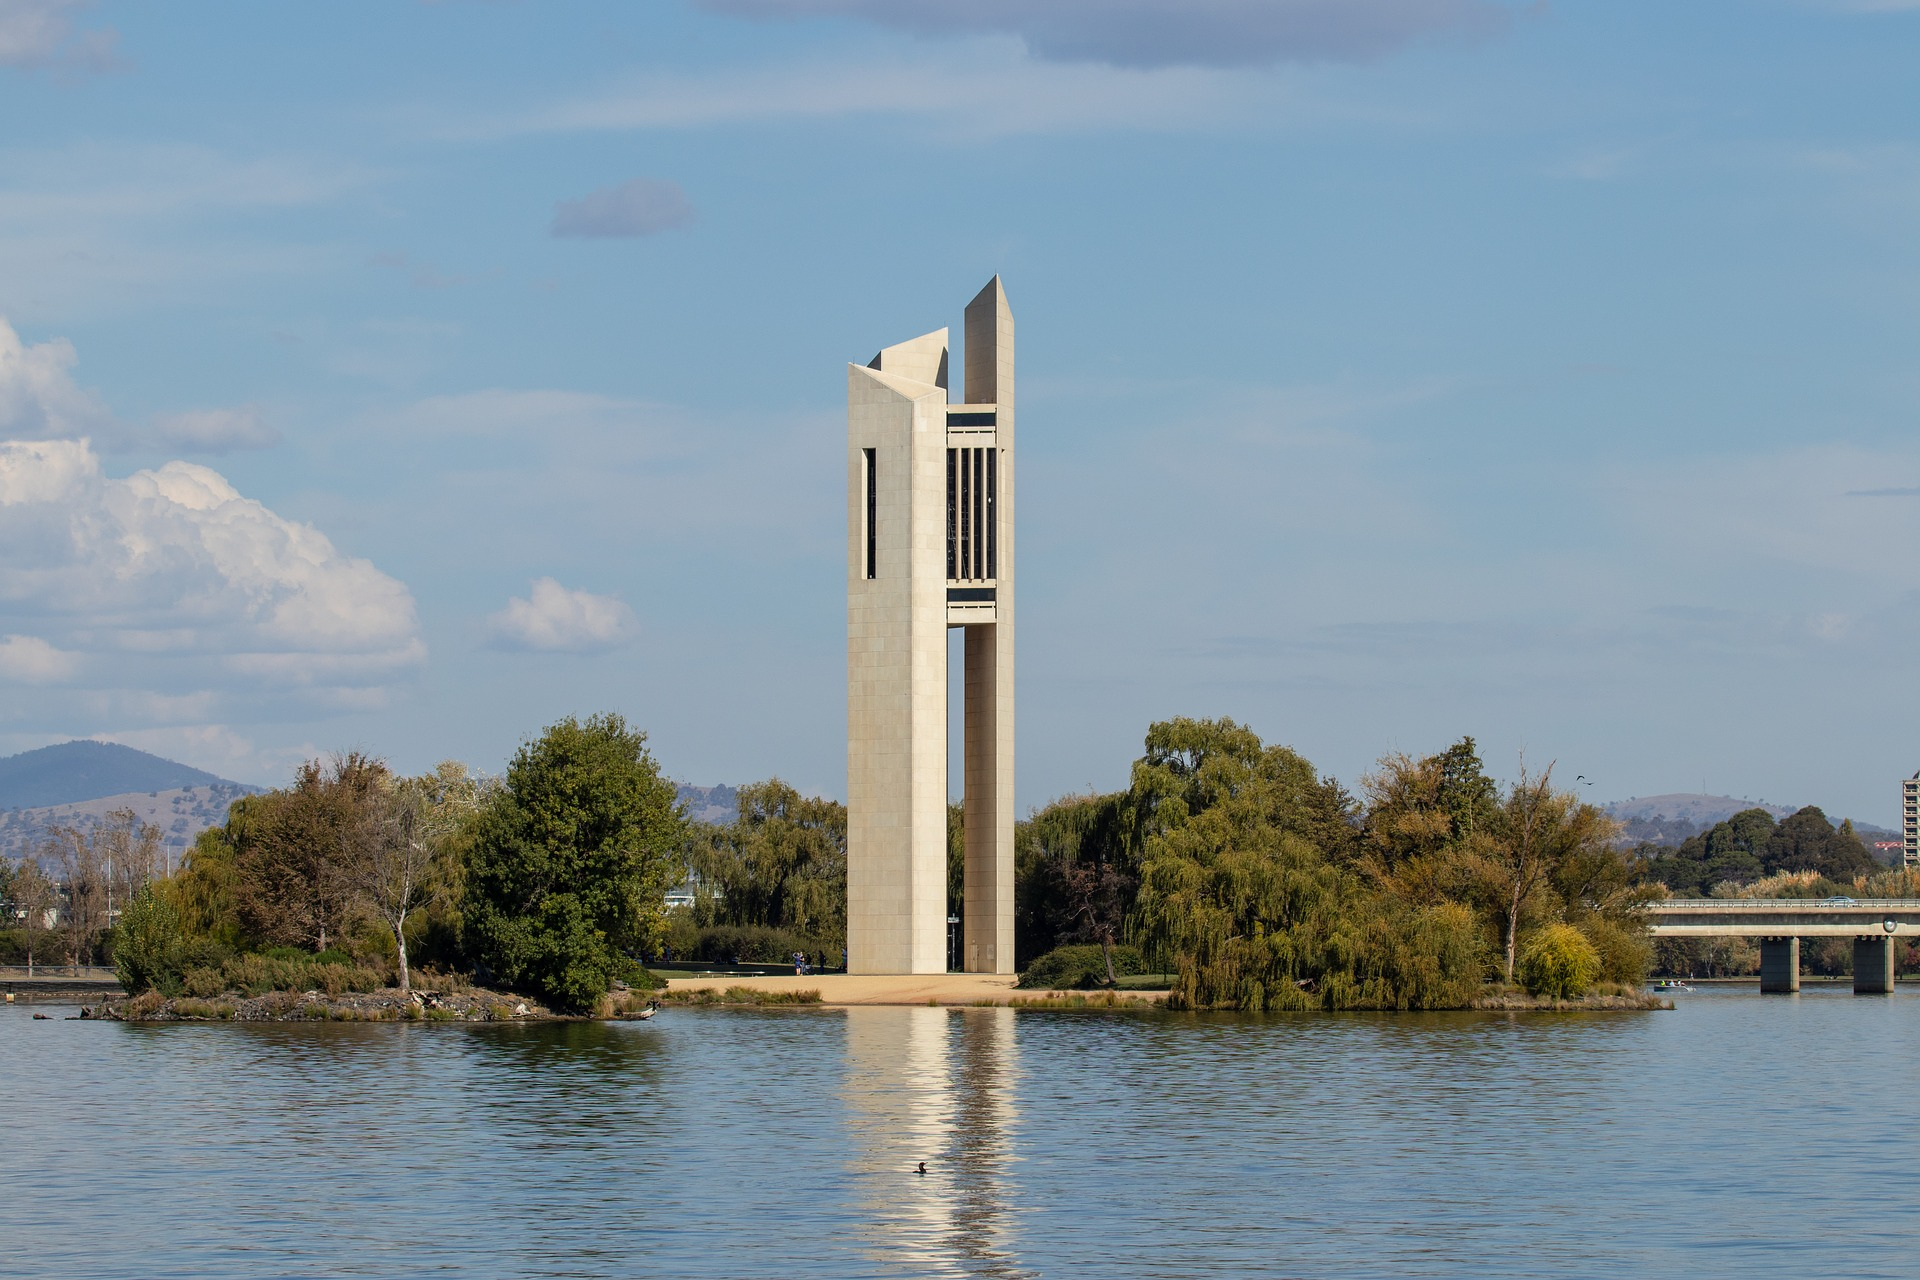 Image of a landmark in Canberra   Spotlight on Canberra article